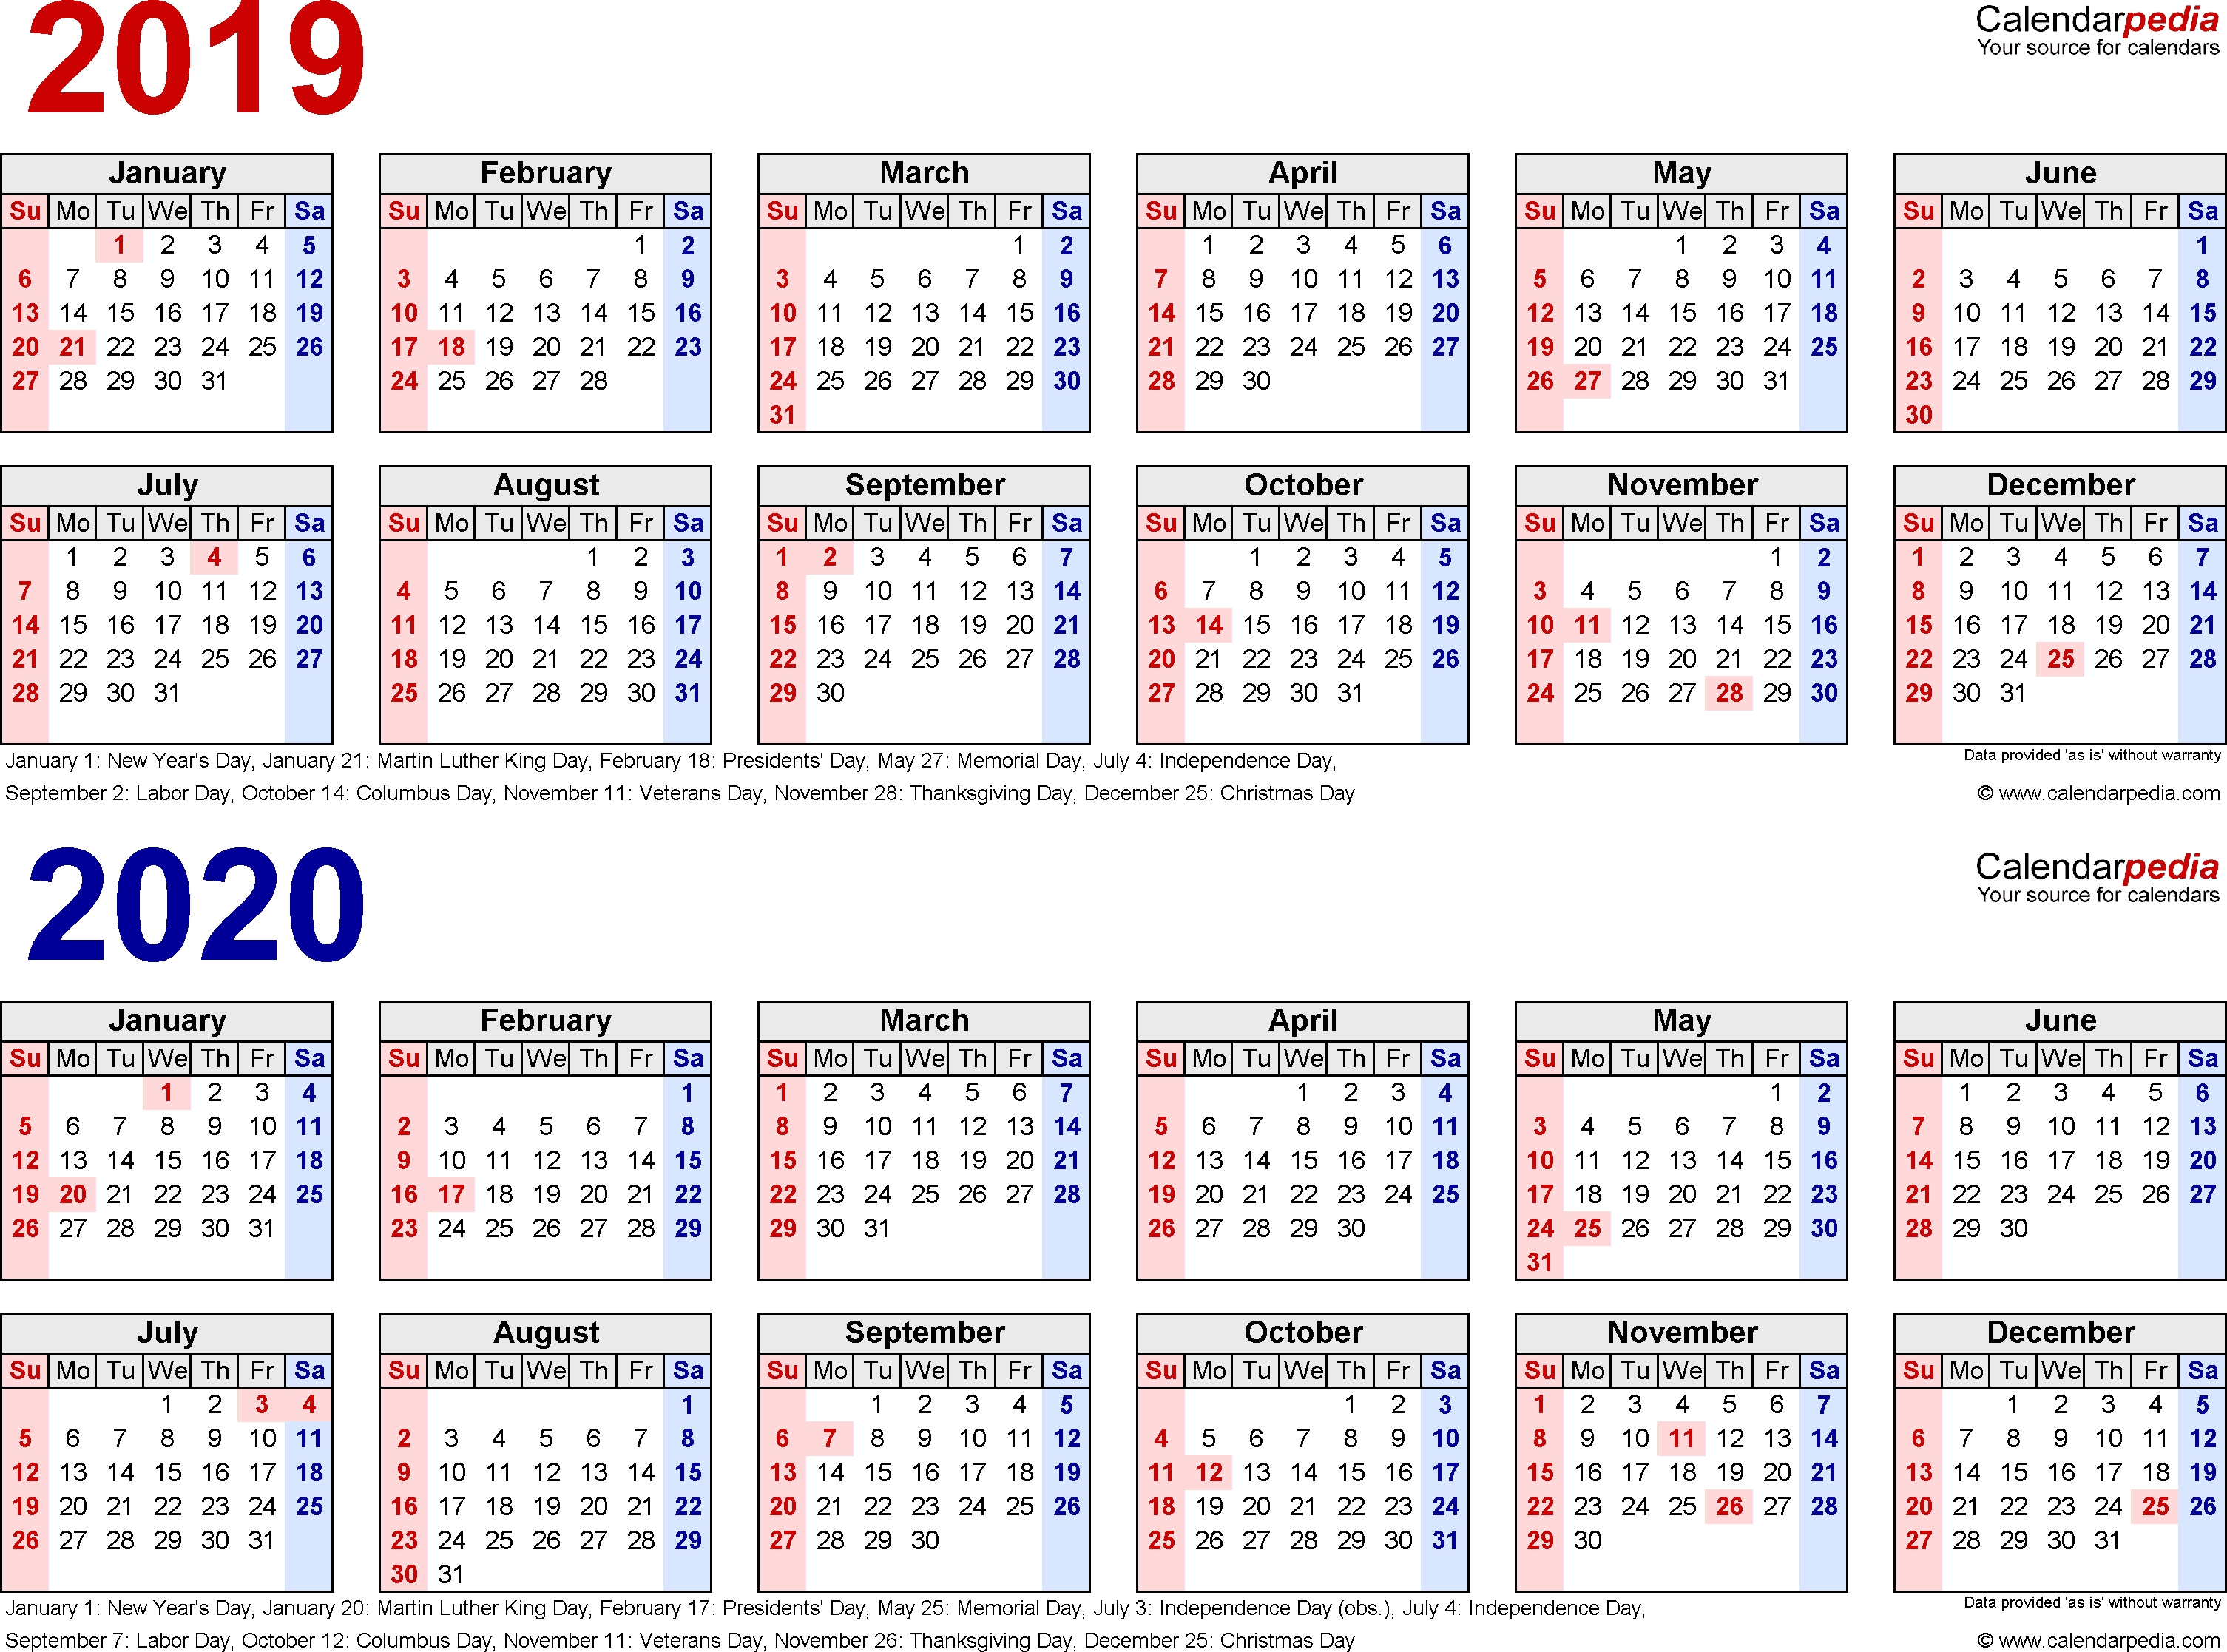 2019-2020 Calendar - Free Printable Two-Year Pdf Calendars within June 2019 To May 2020 Calendar